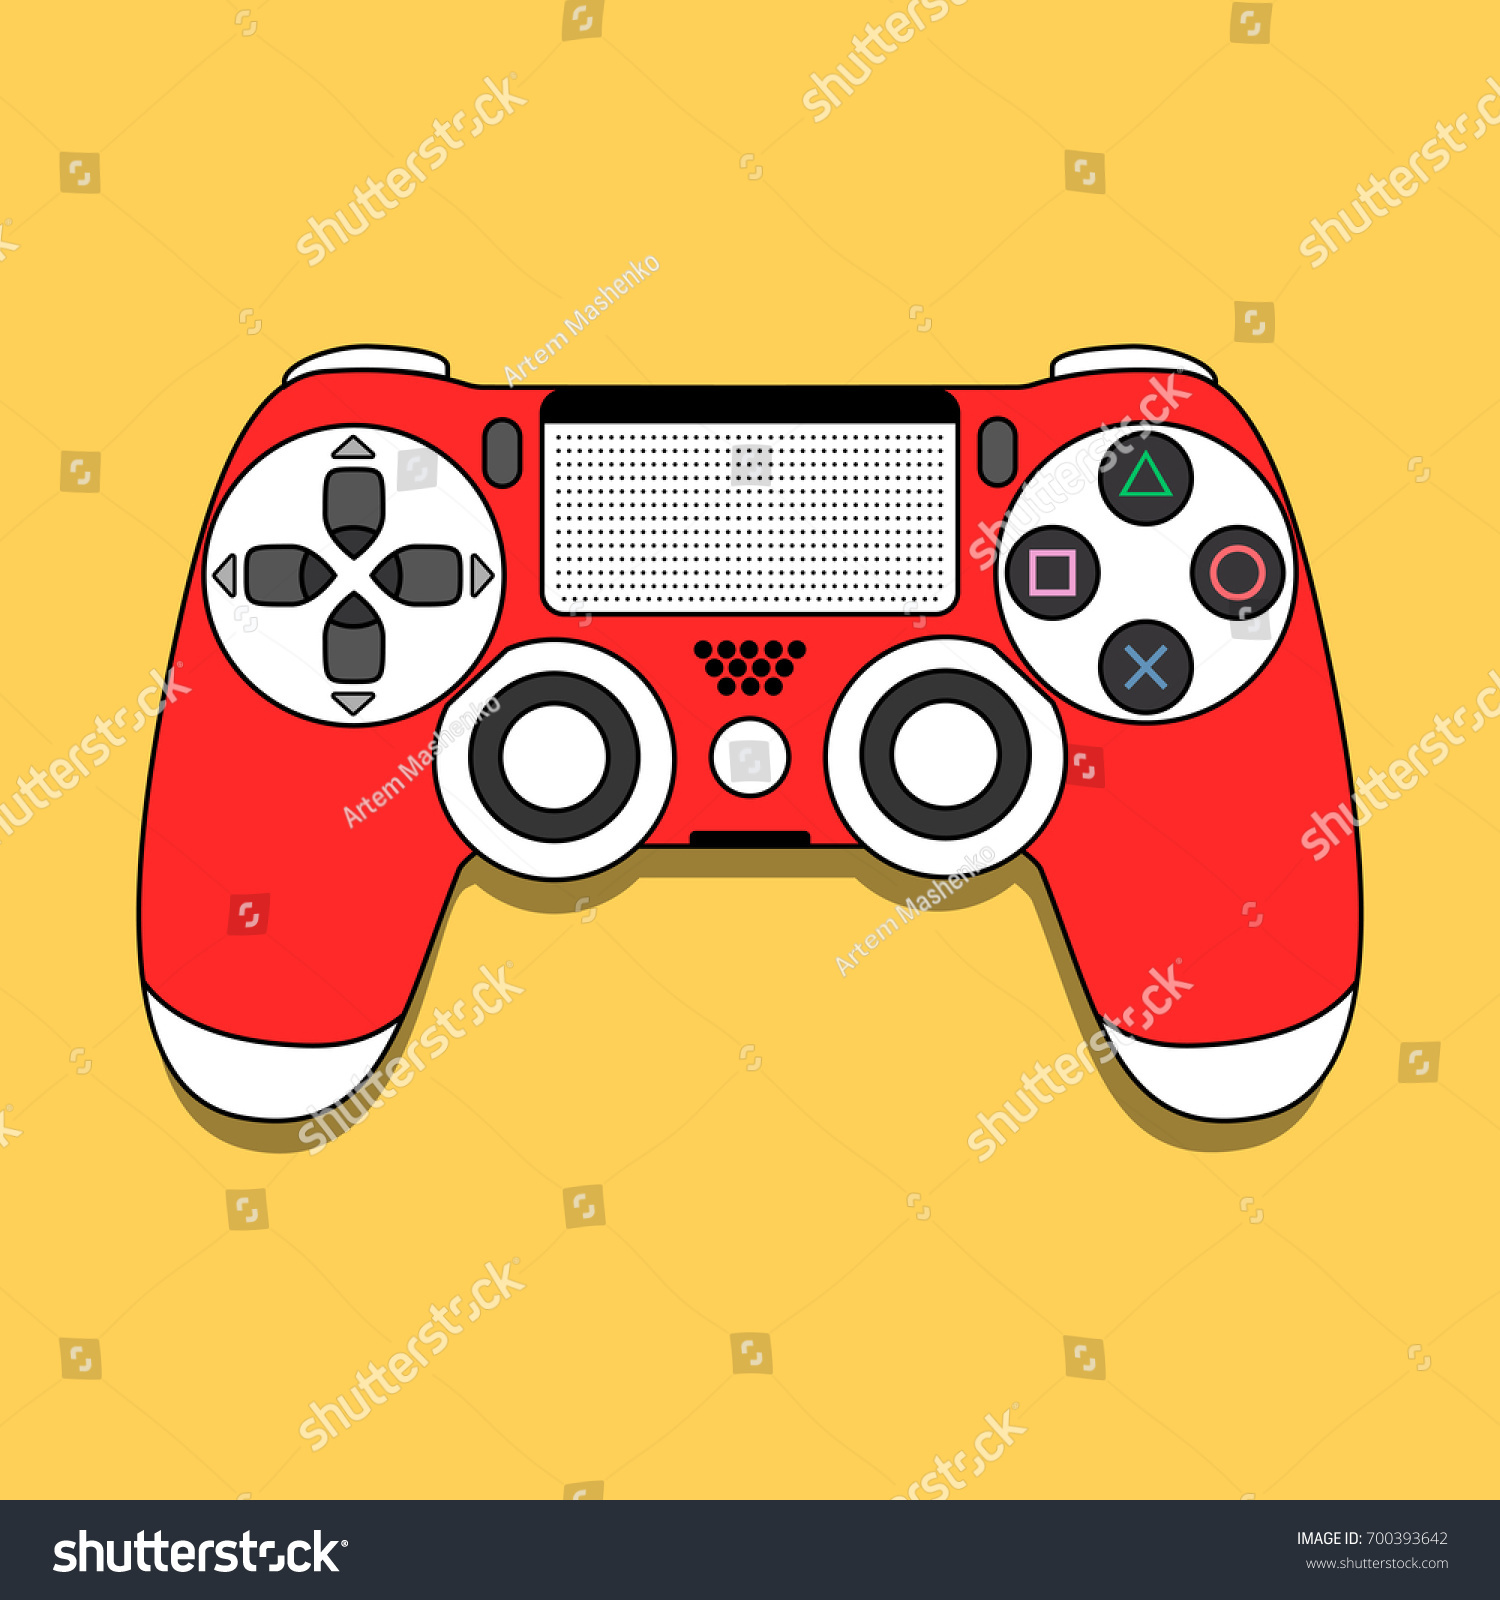 Dual Shock 4 Gamepad Play Station Modern Stock Vector Royalty Joystick Double Game Pad Transparant Wellcome Dualshock For Playstation Design Illustration Eps10